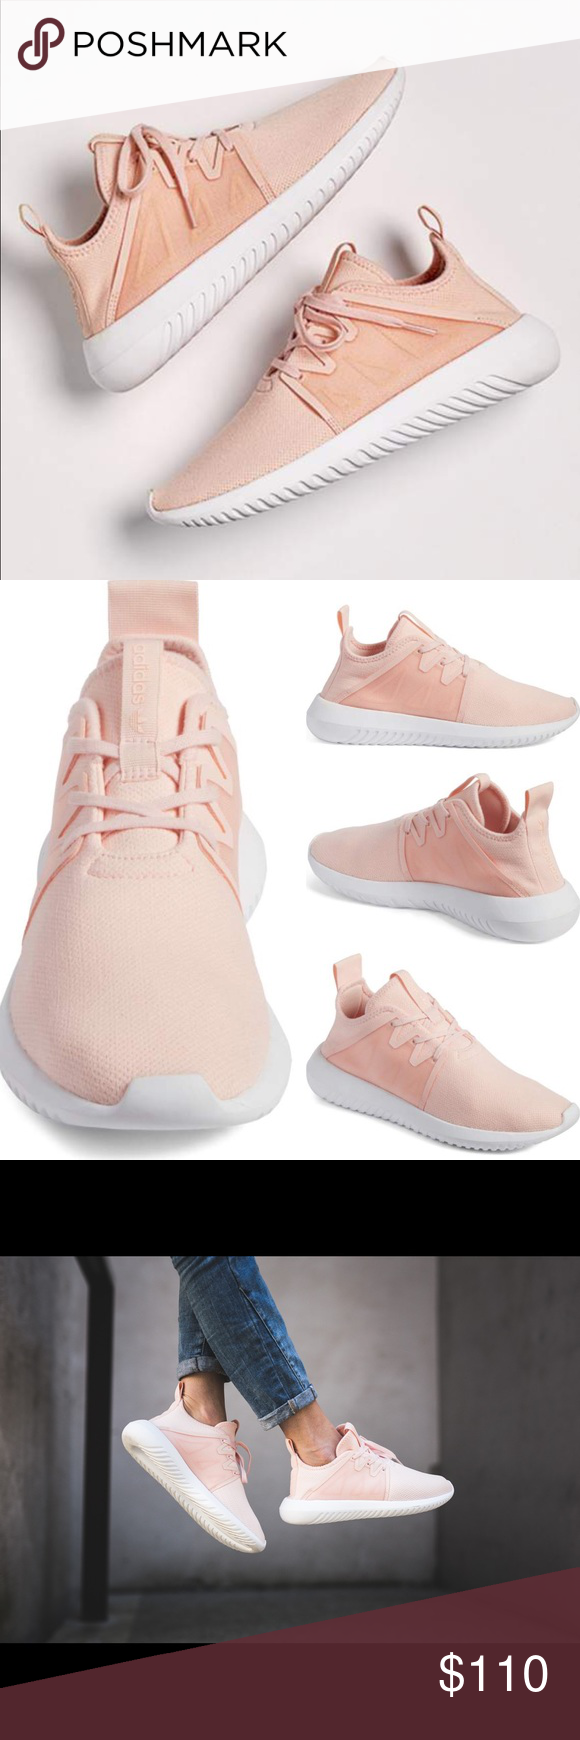 bd1d95f2032e Pink Adidas Tubular viral 2.0 Color  Icy Pink. Brand new with box. Size  8.5. Runs a bit loose (I m size 8.5 but feels 9 with thin socks- should be  okay with ...